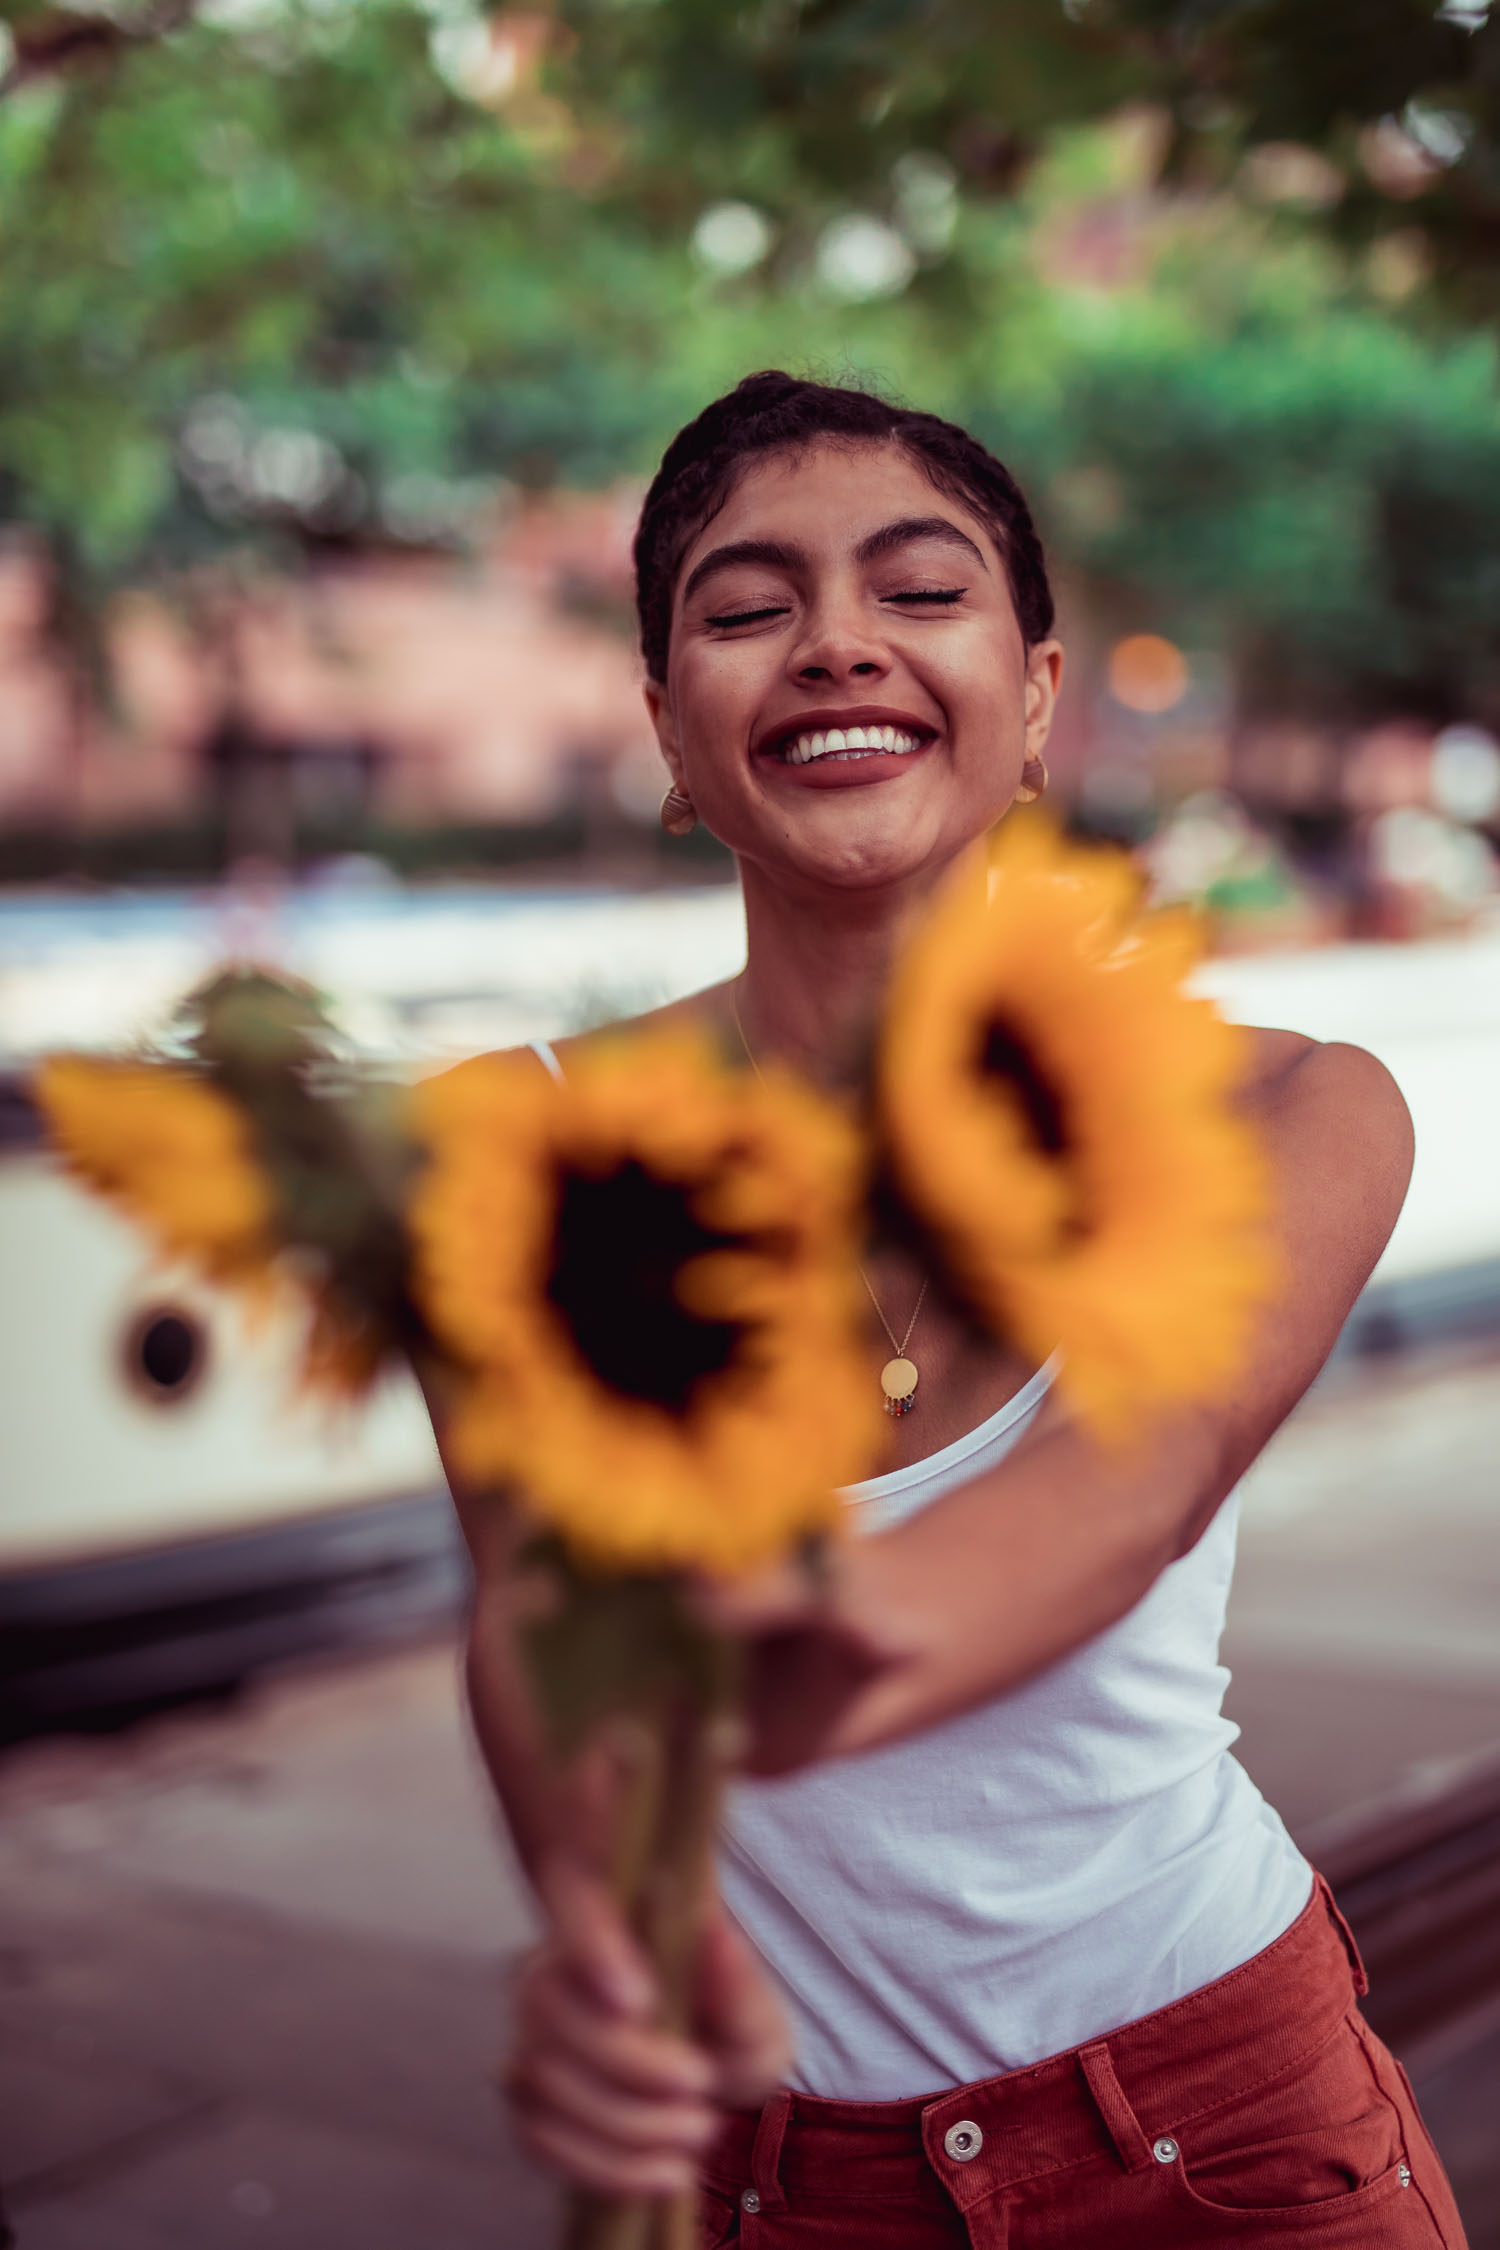 Samio Sunflowers Portrait Photography